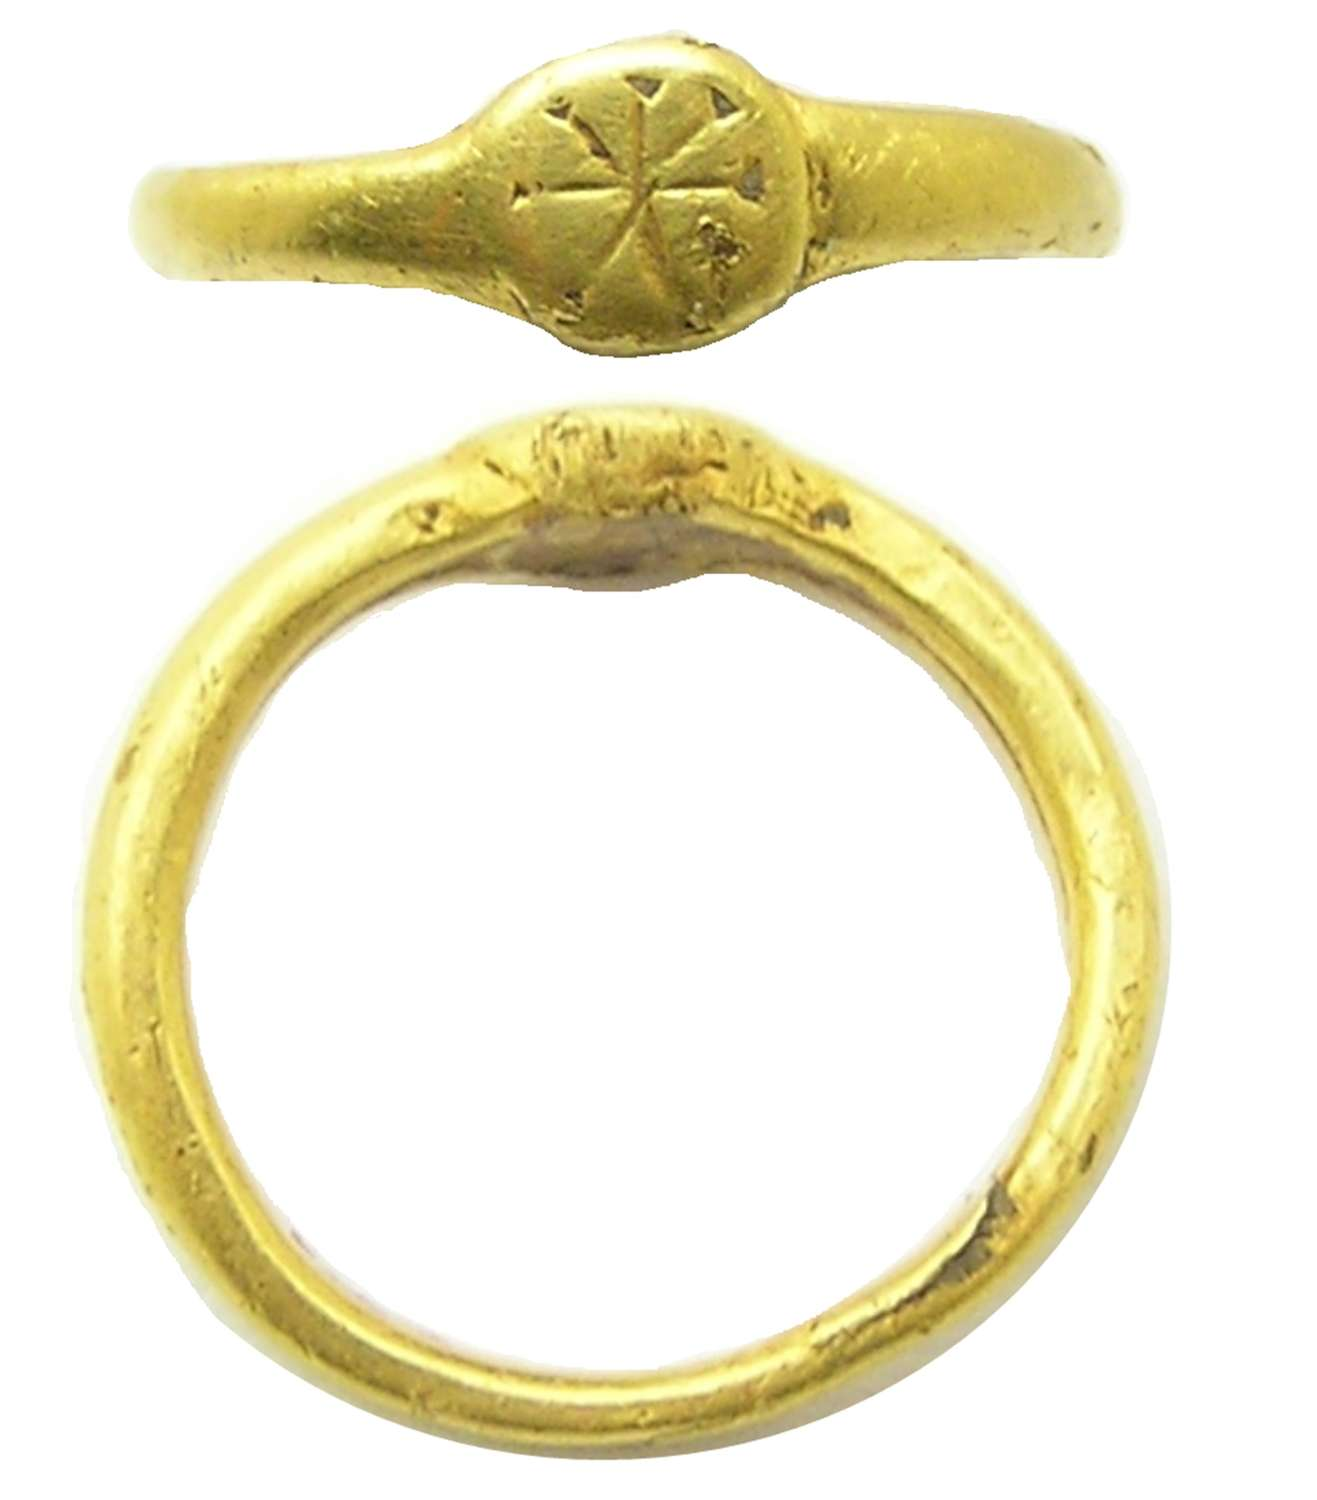 Roman gold finger ring Chi-Rho early Christian